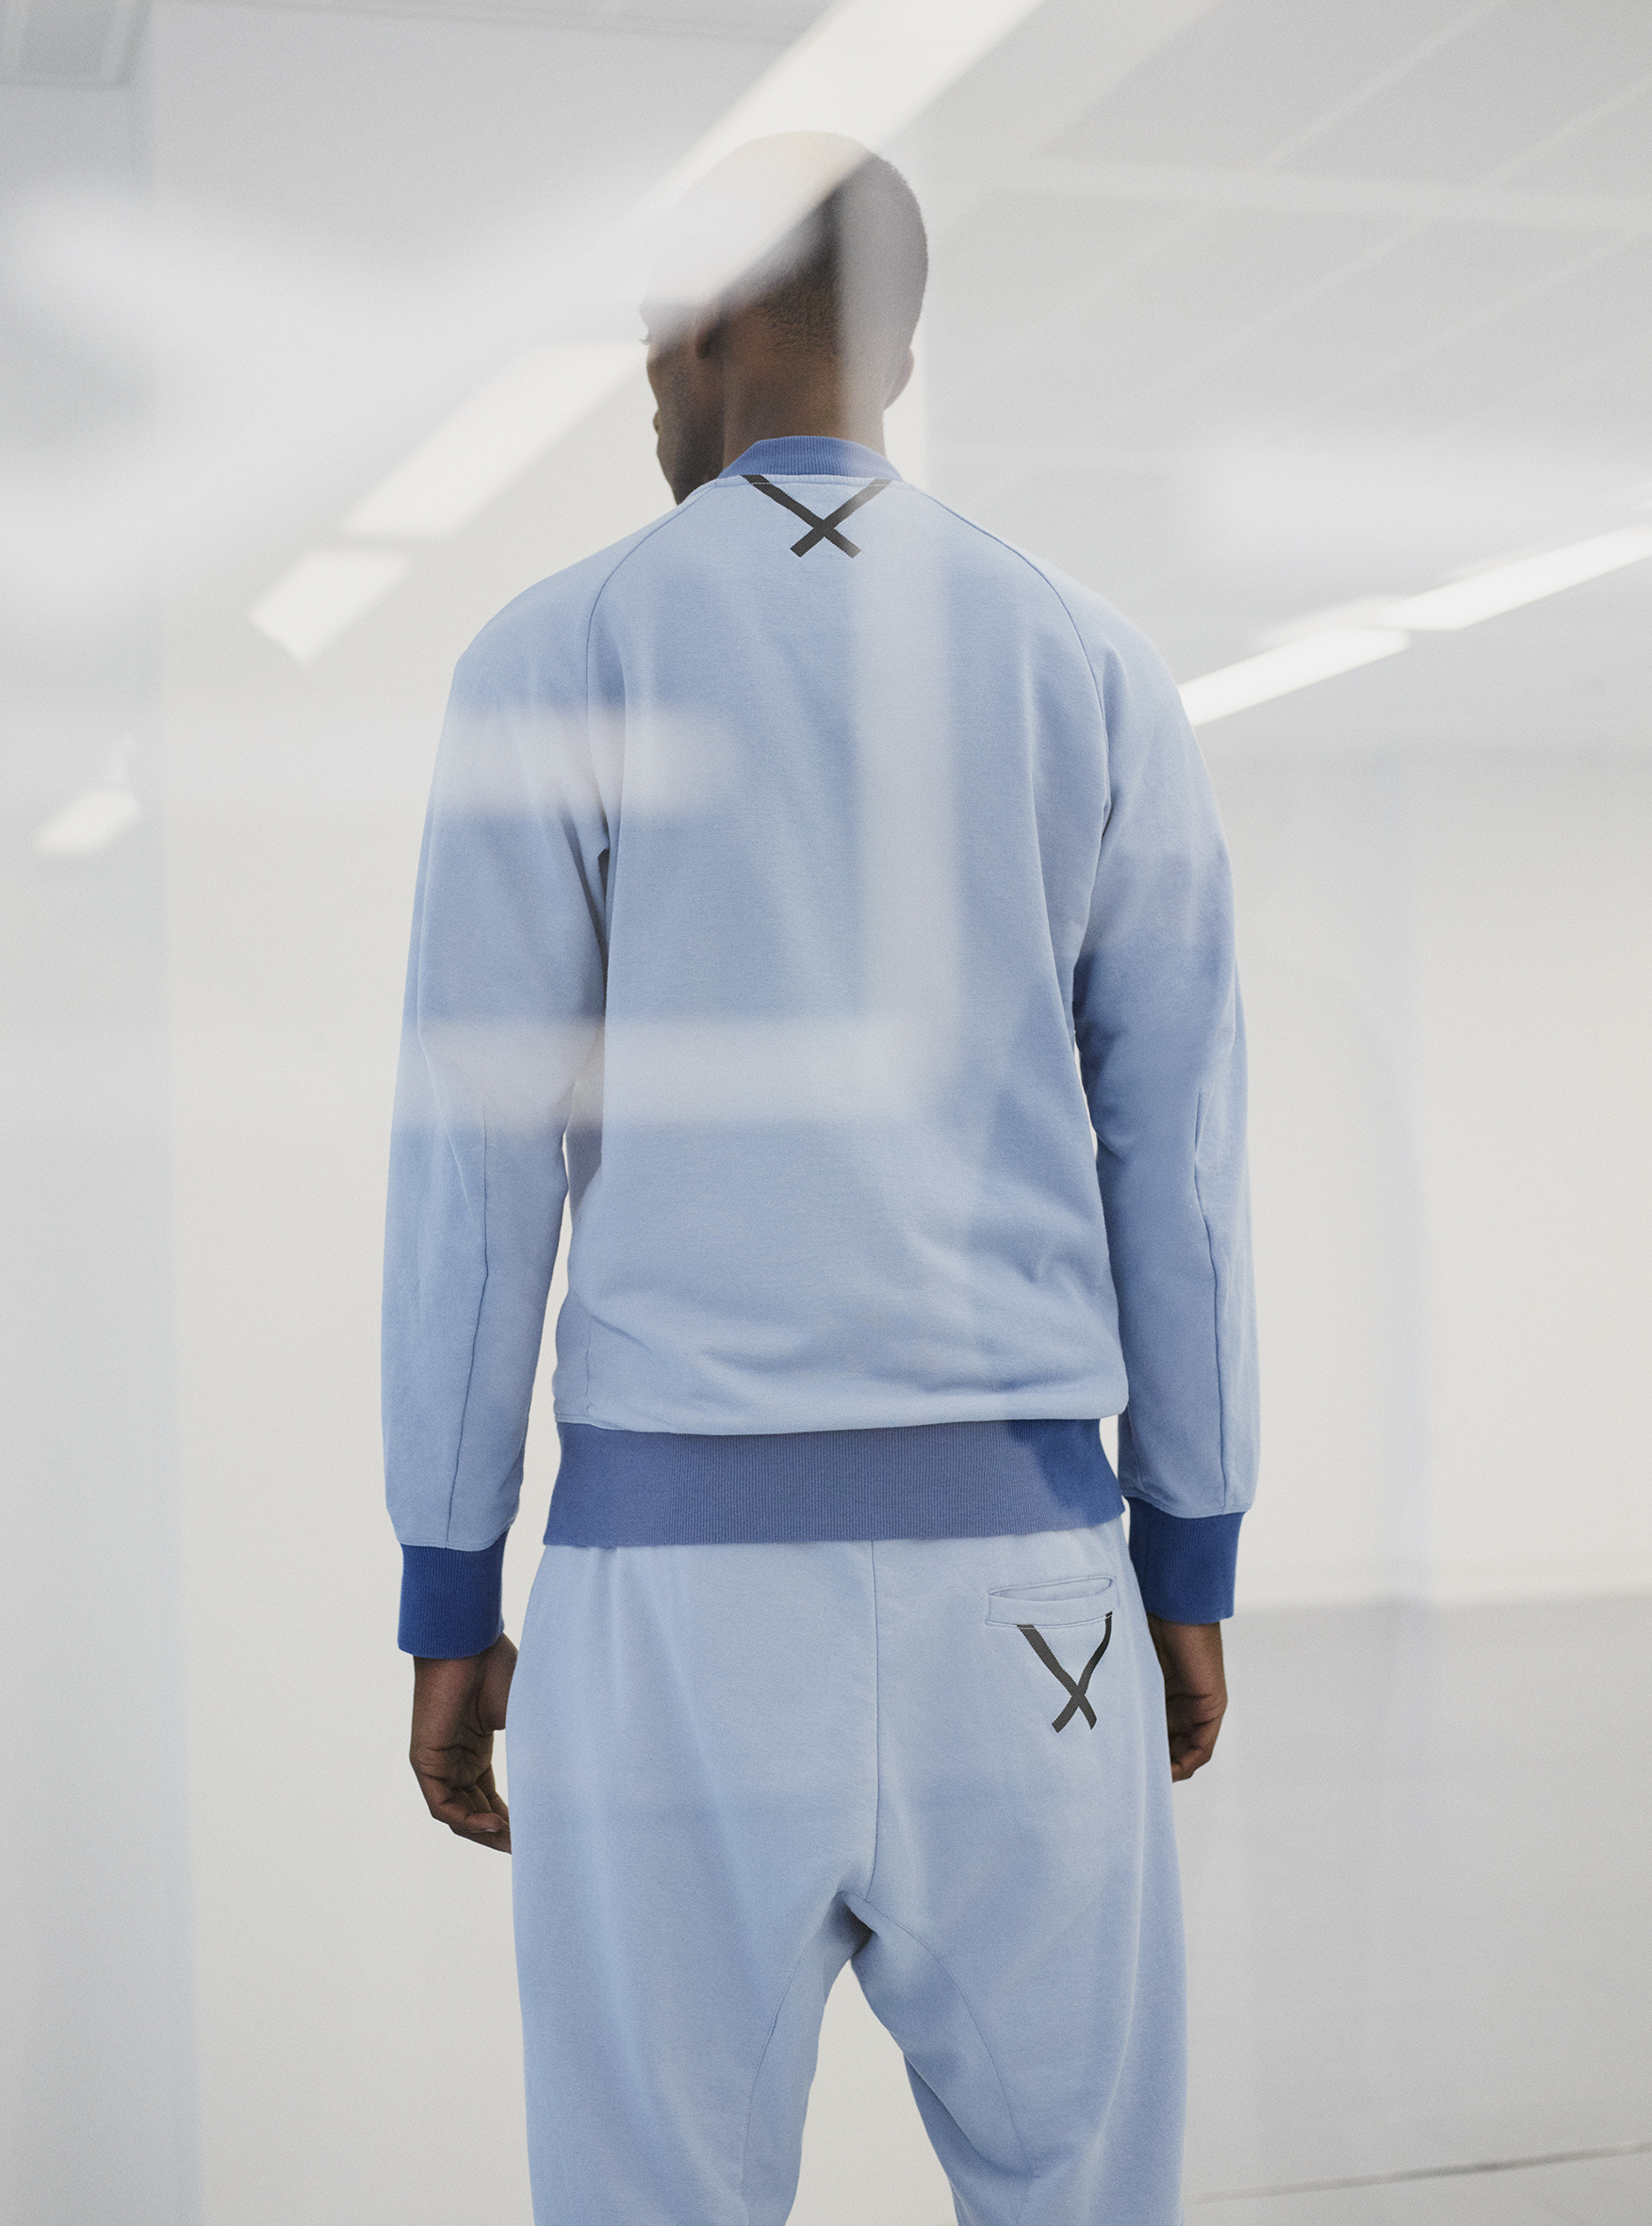 adidas x Oyster Holdings Image 02